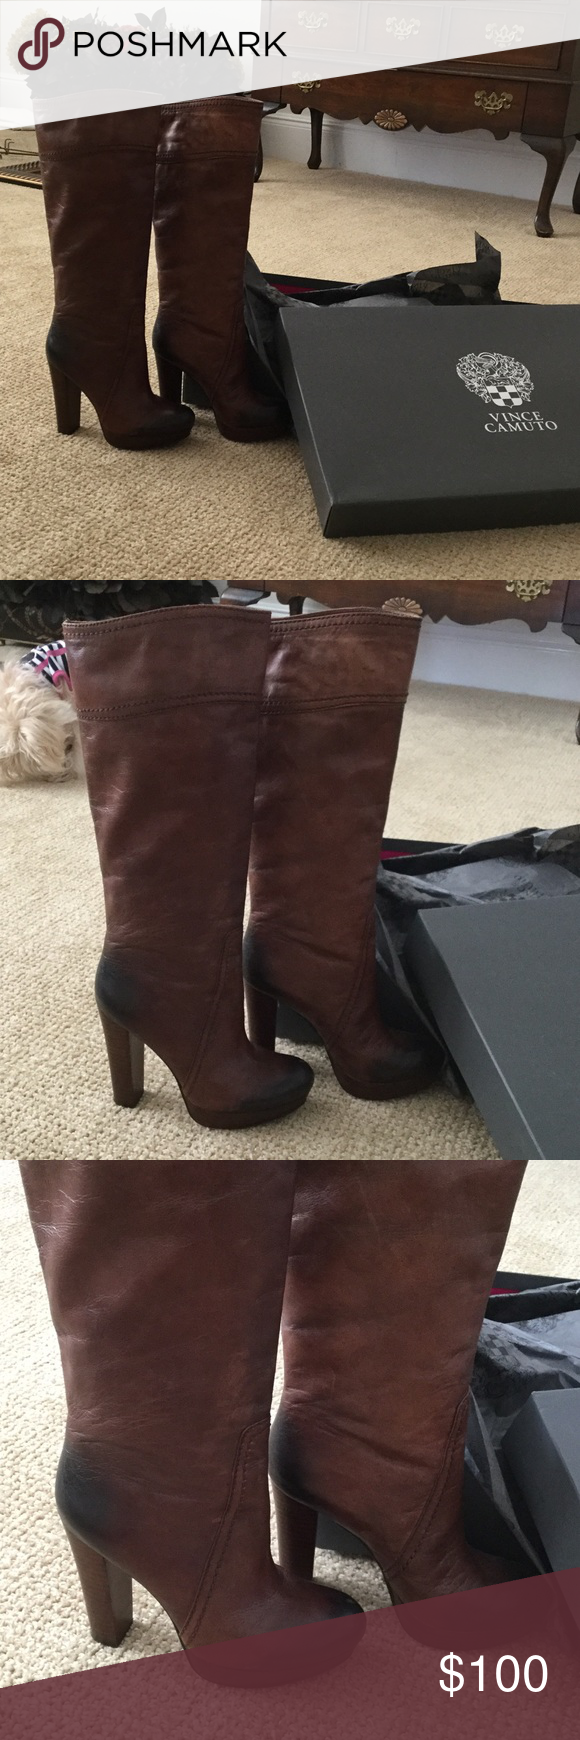 Gorgeous Vince Camuto Boots These boots are fabulous! They are a beautiful two toned mostly brown with black accents. Excellent condition. Worn once! Vince Camuto Shoes Heeled Boots